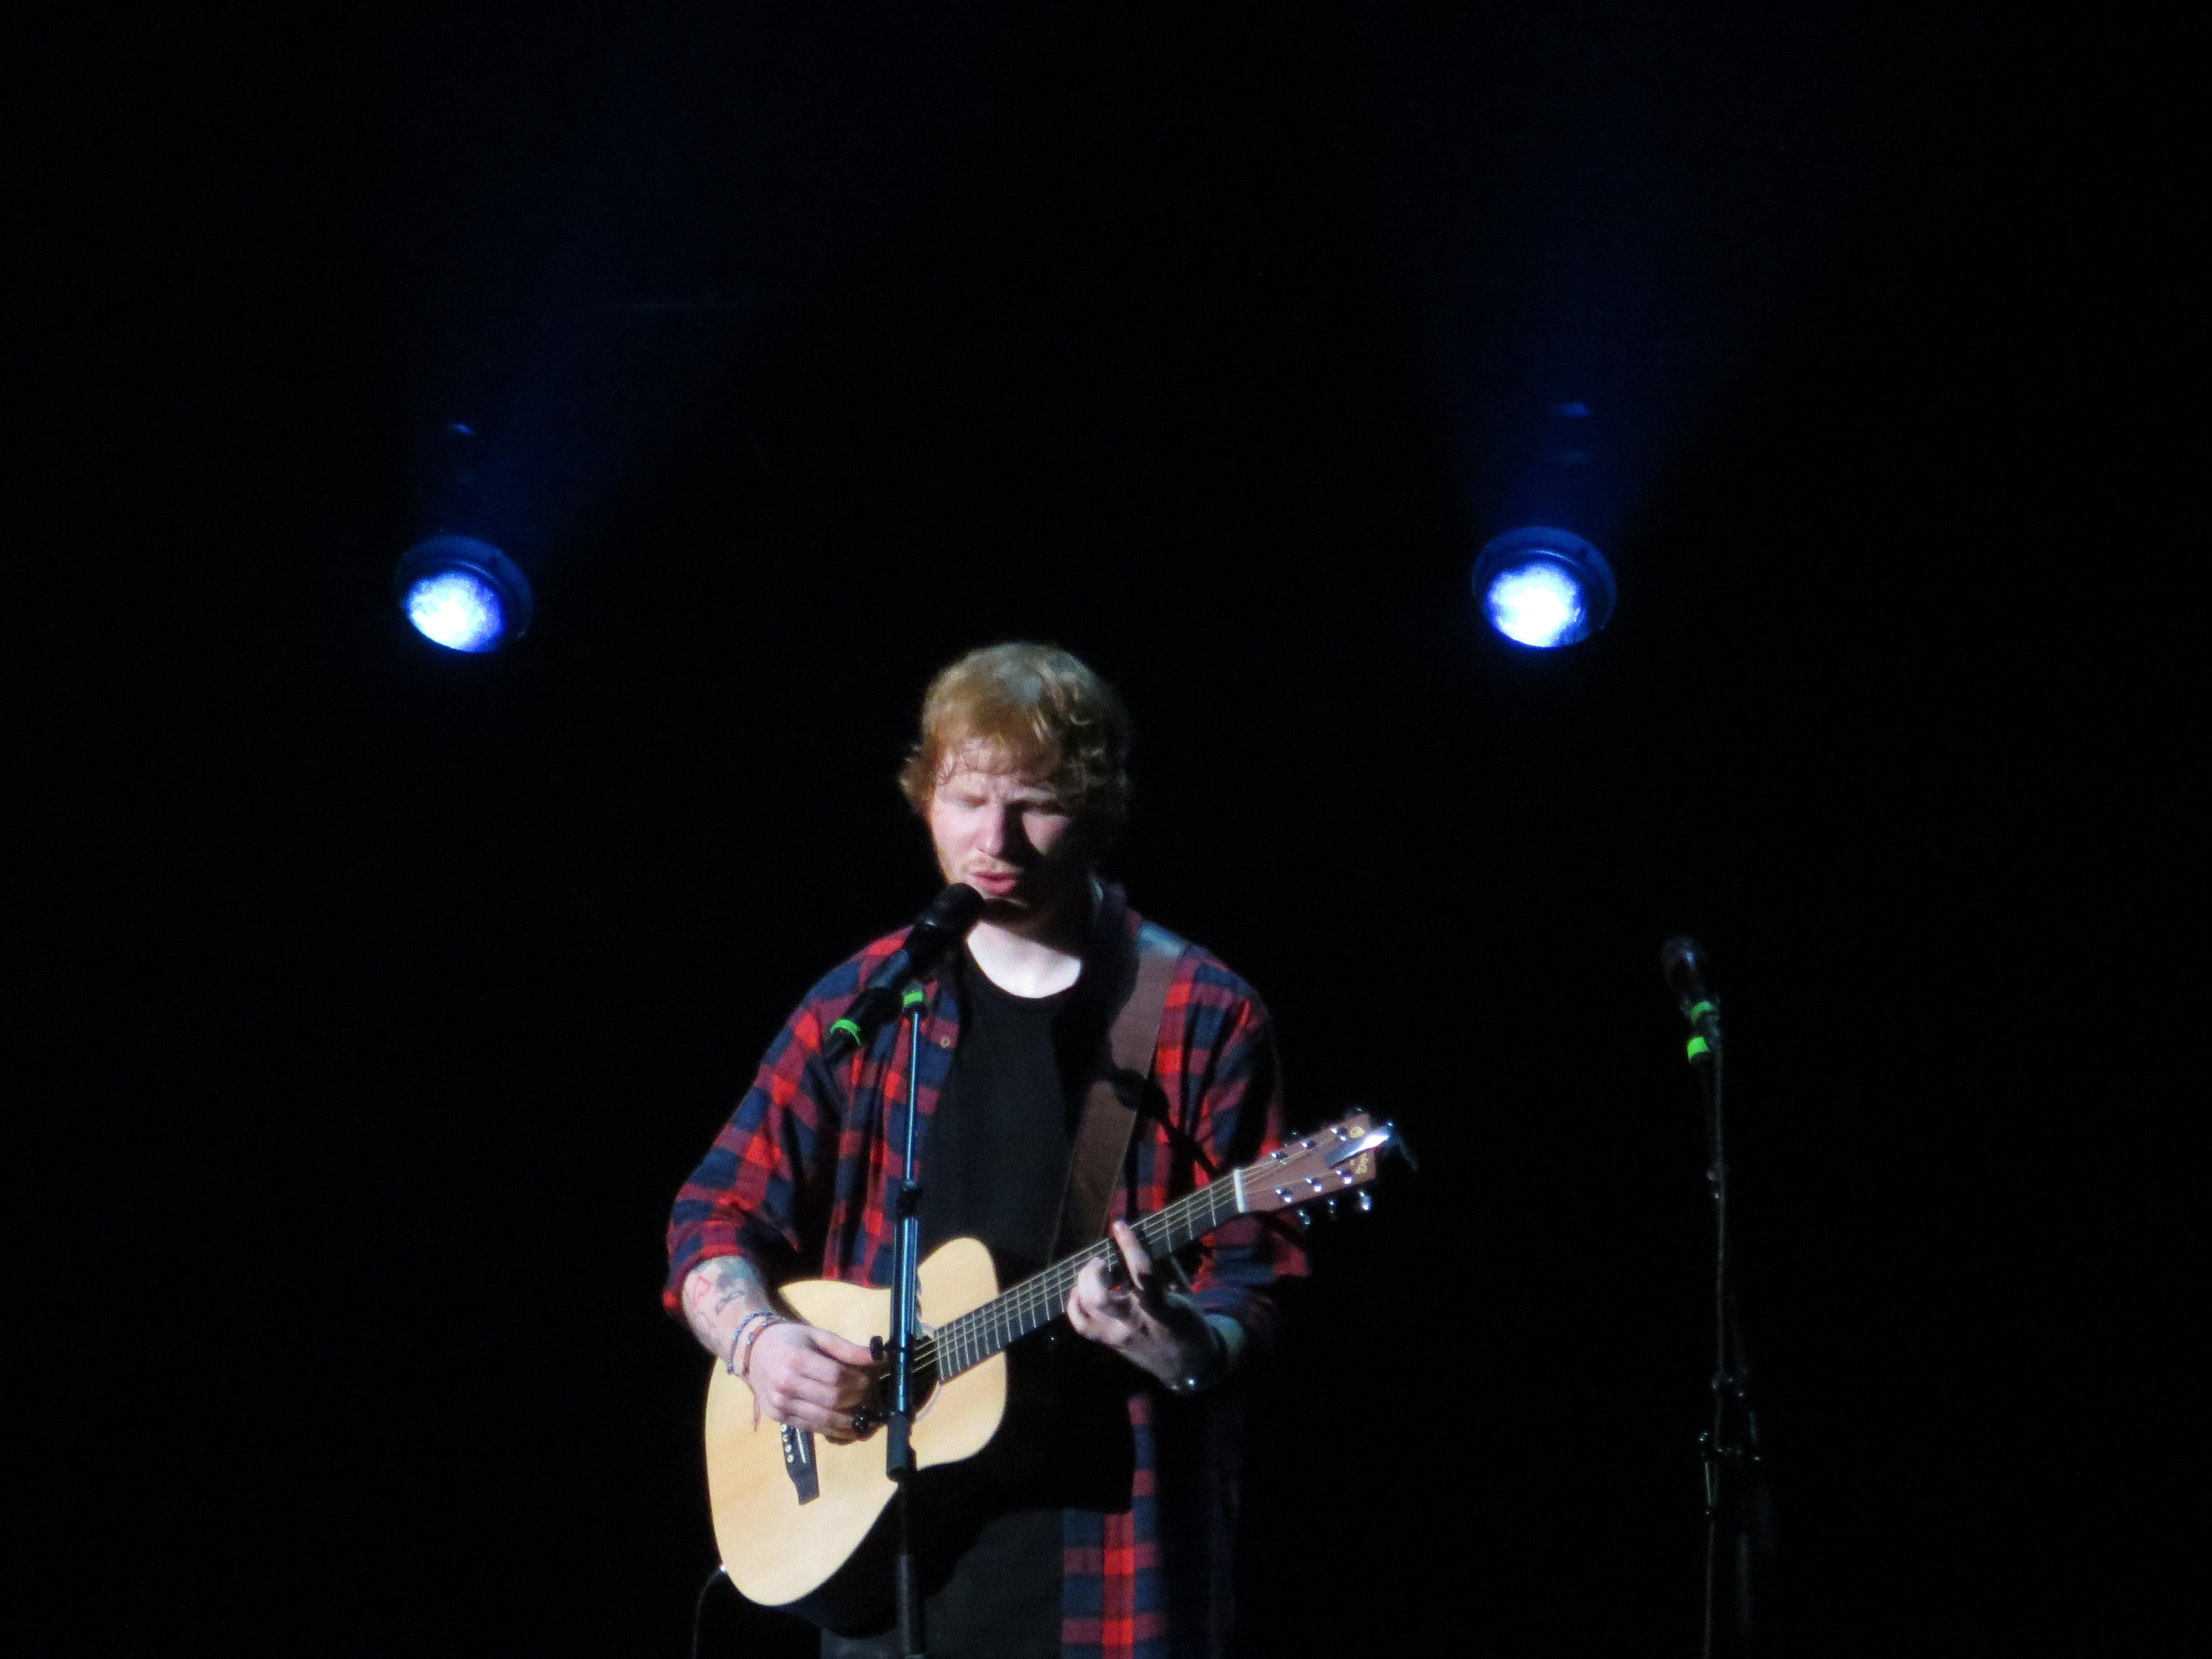 Ed Sheeran Takes the Stage in Boston